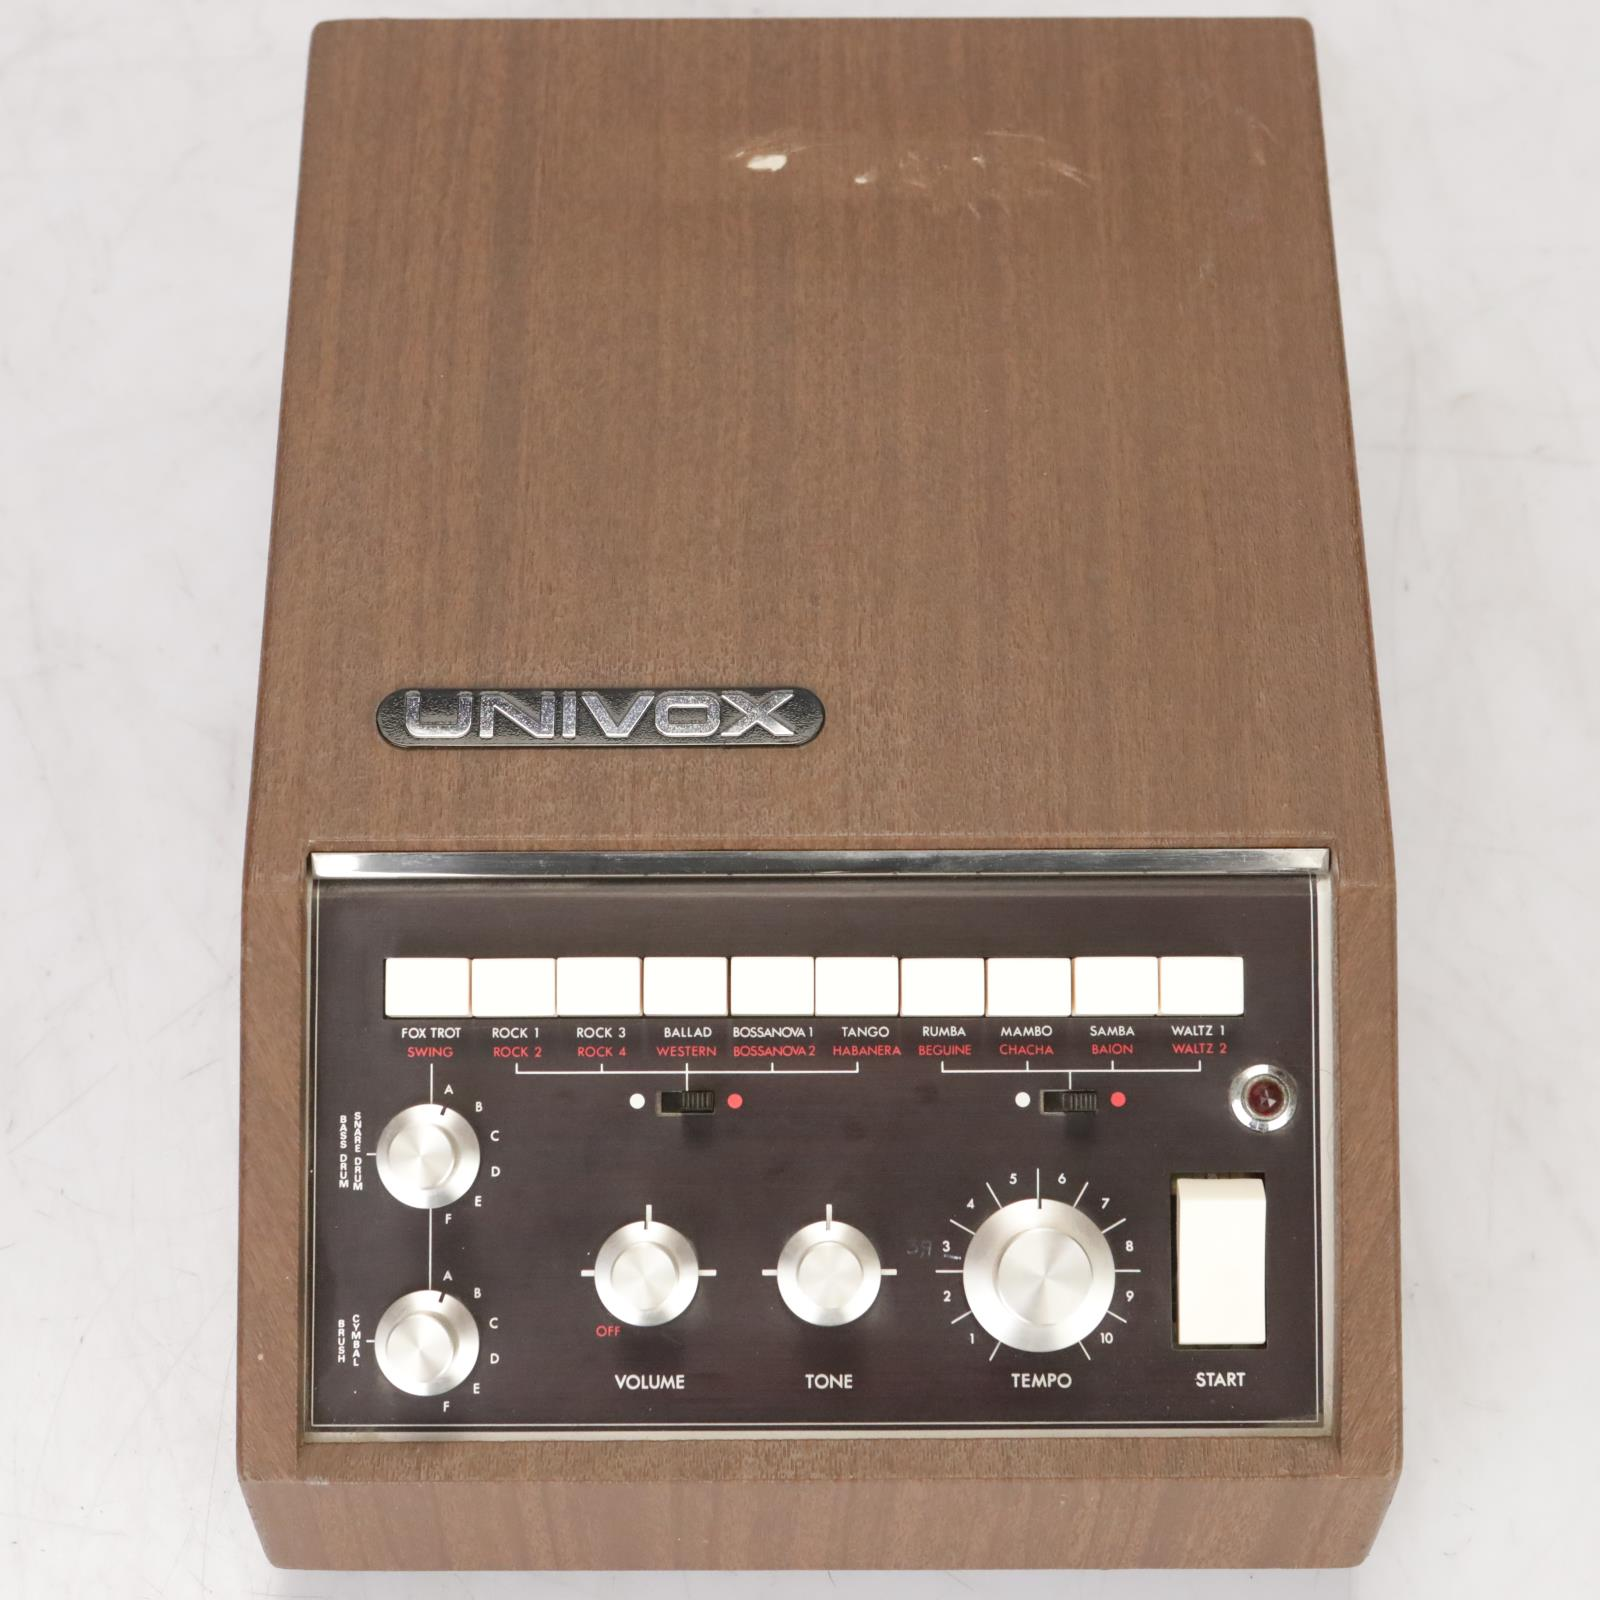 Univox SR-55 Analog Rhythm Drum Machine Owned by Leland Sklar #38770